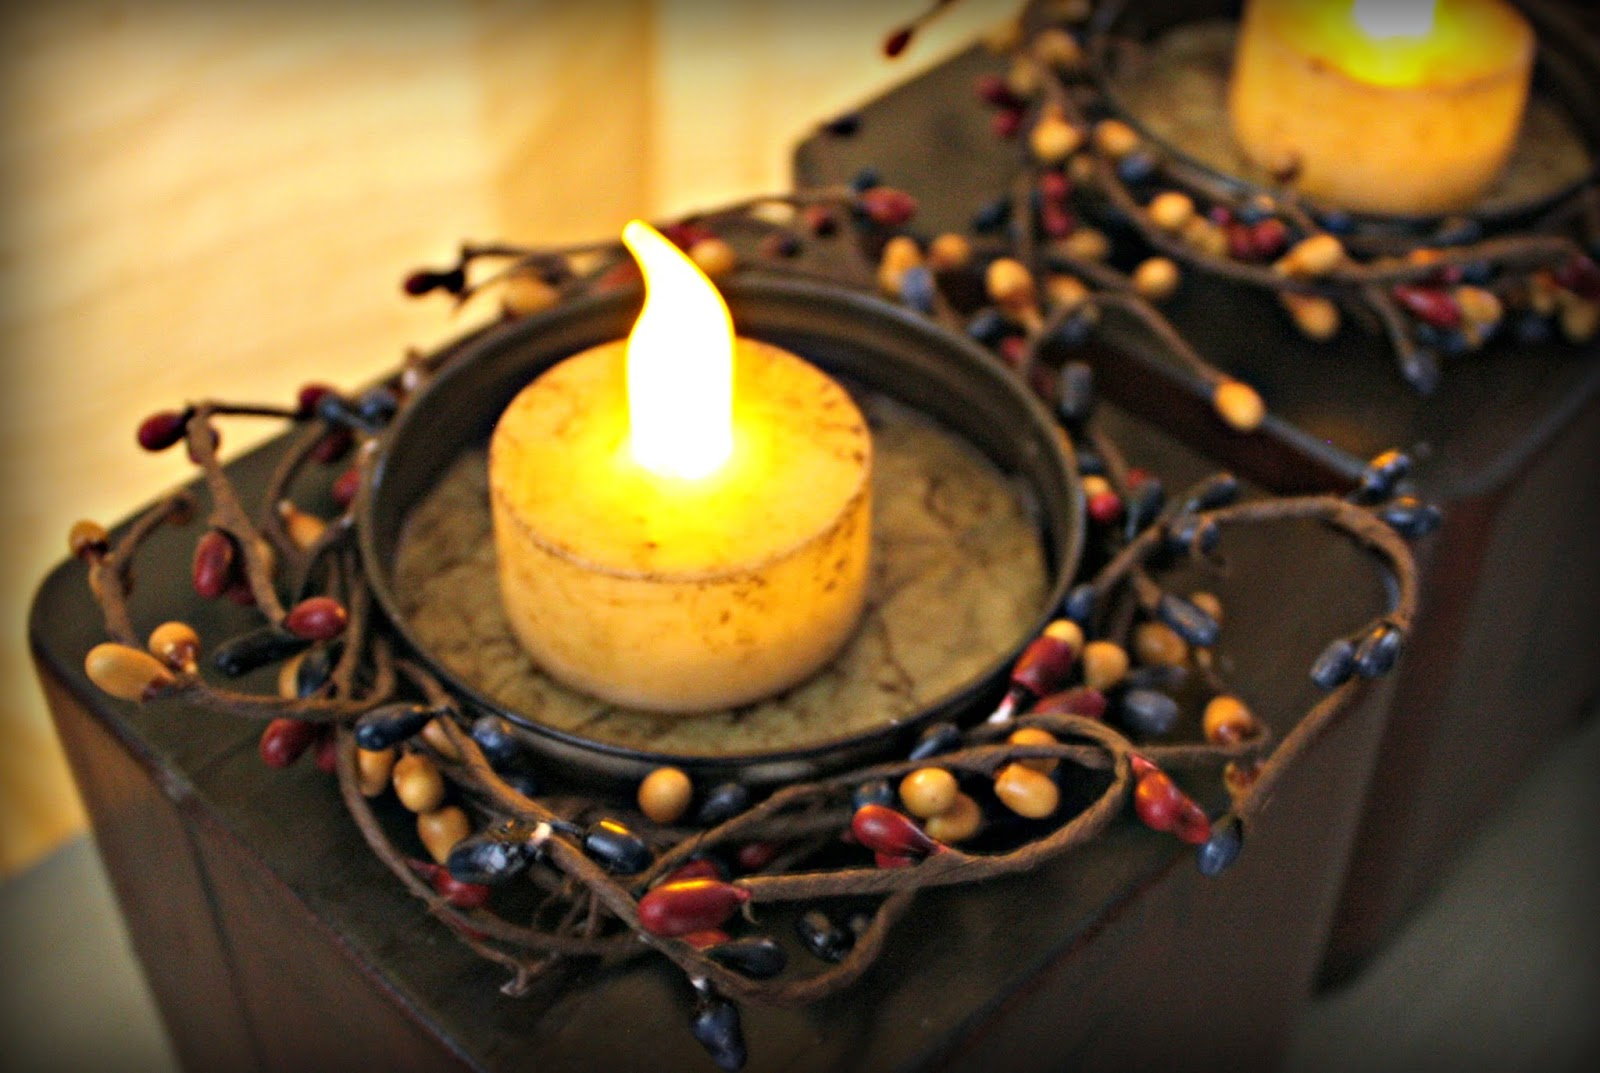 Mason jar lids as candleholders